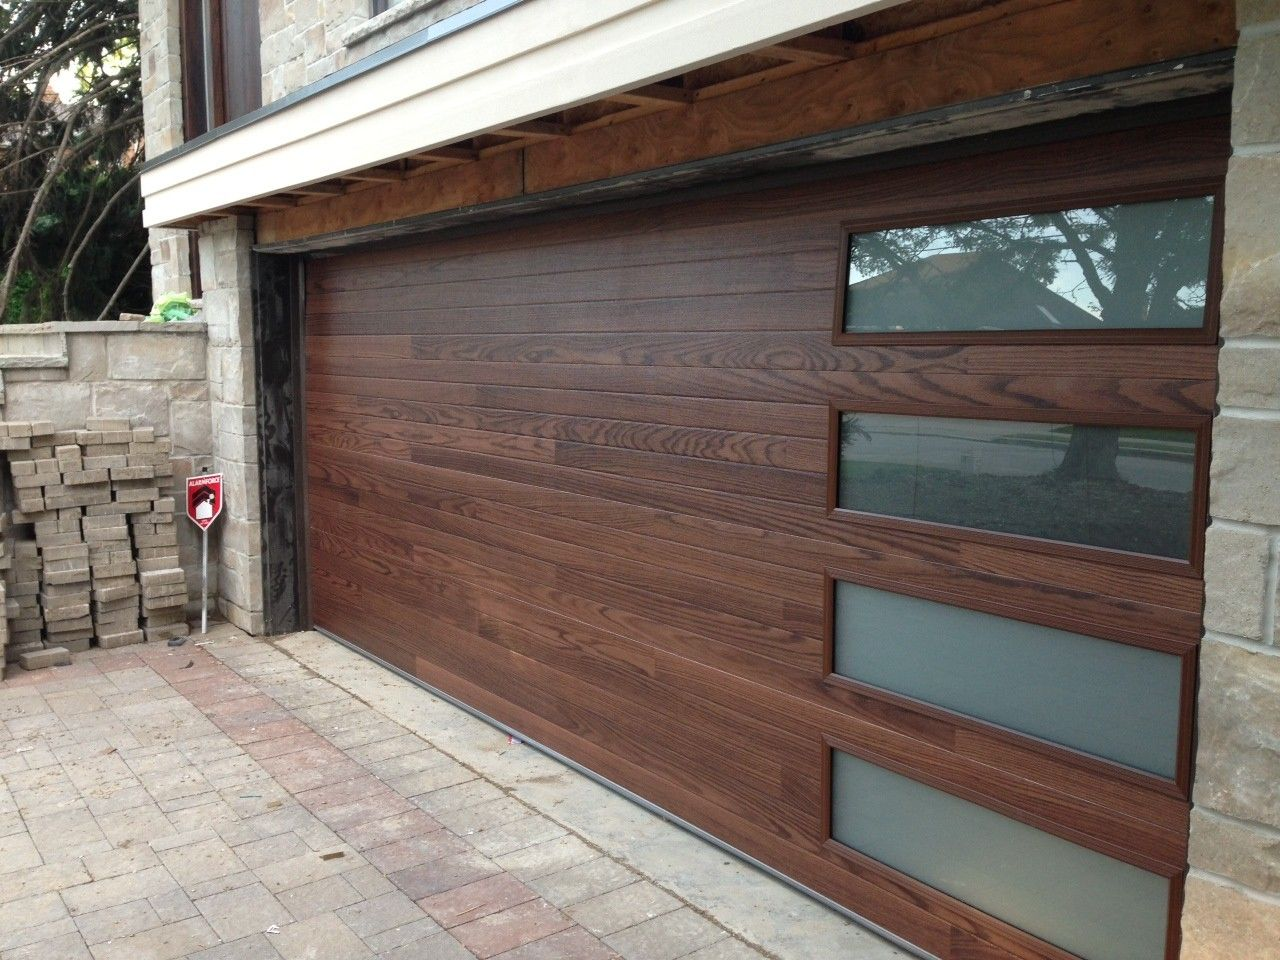 berkeley systems gate martin equipment doors residential dock door ca richmond garage